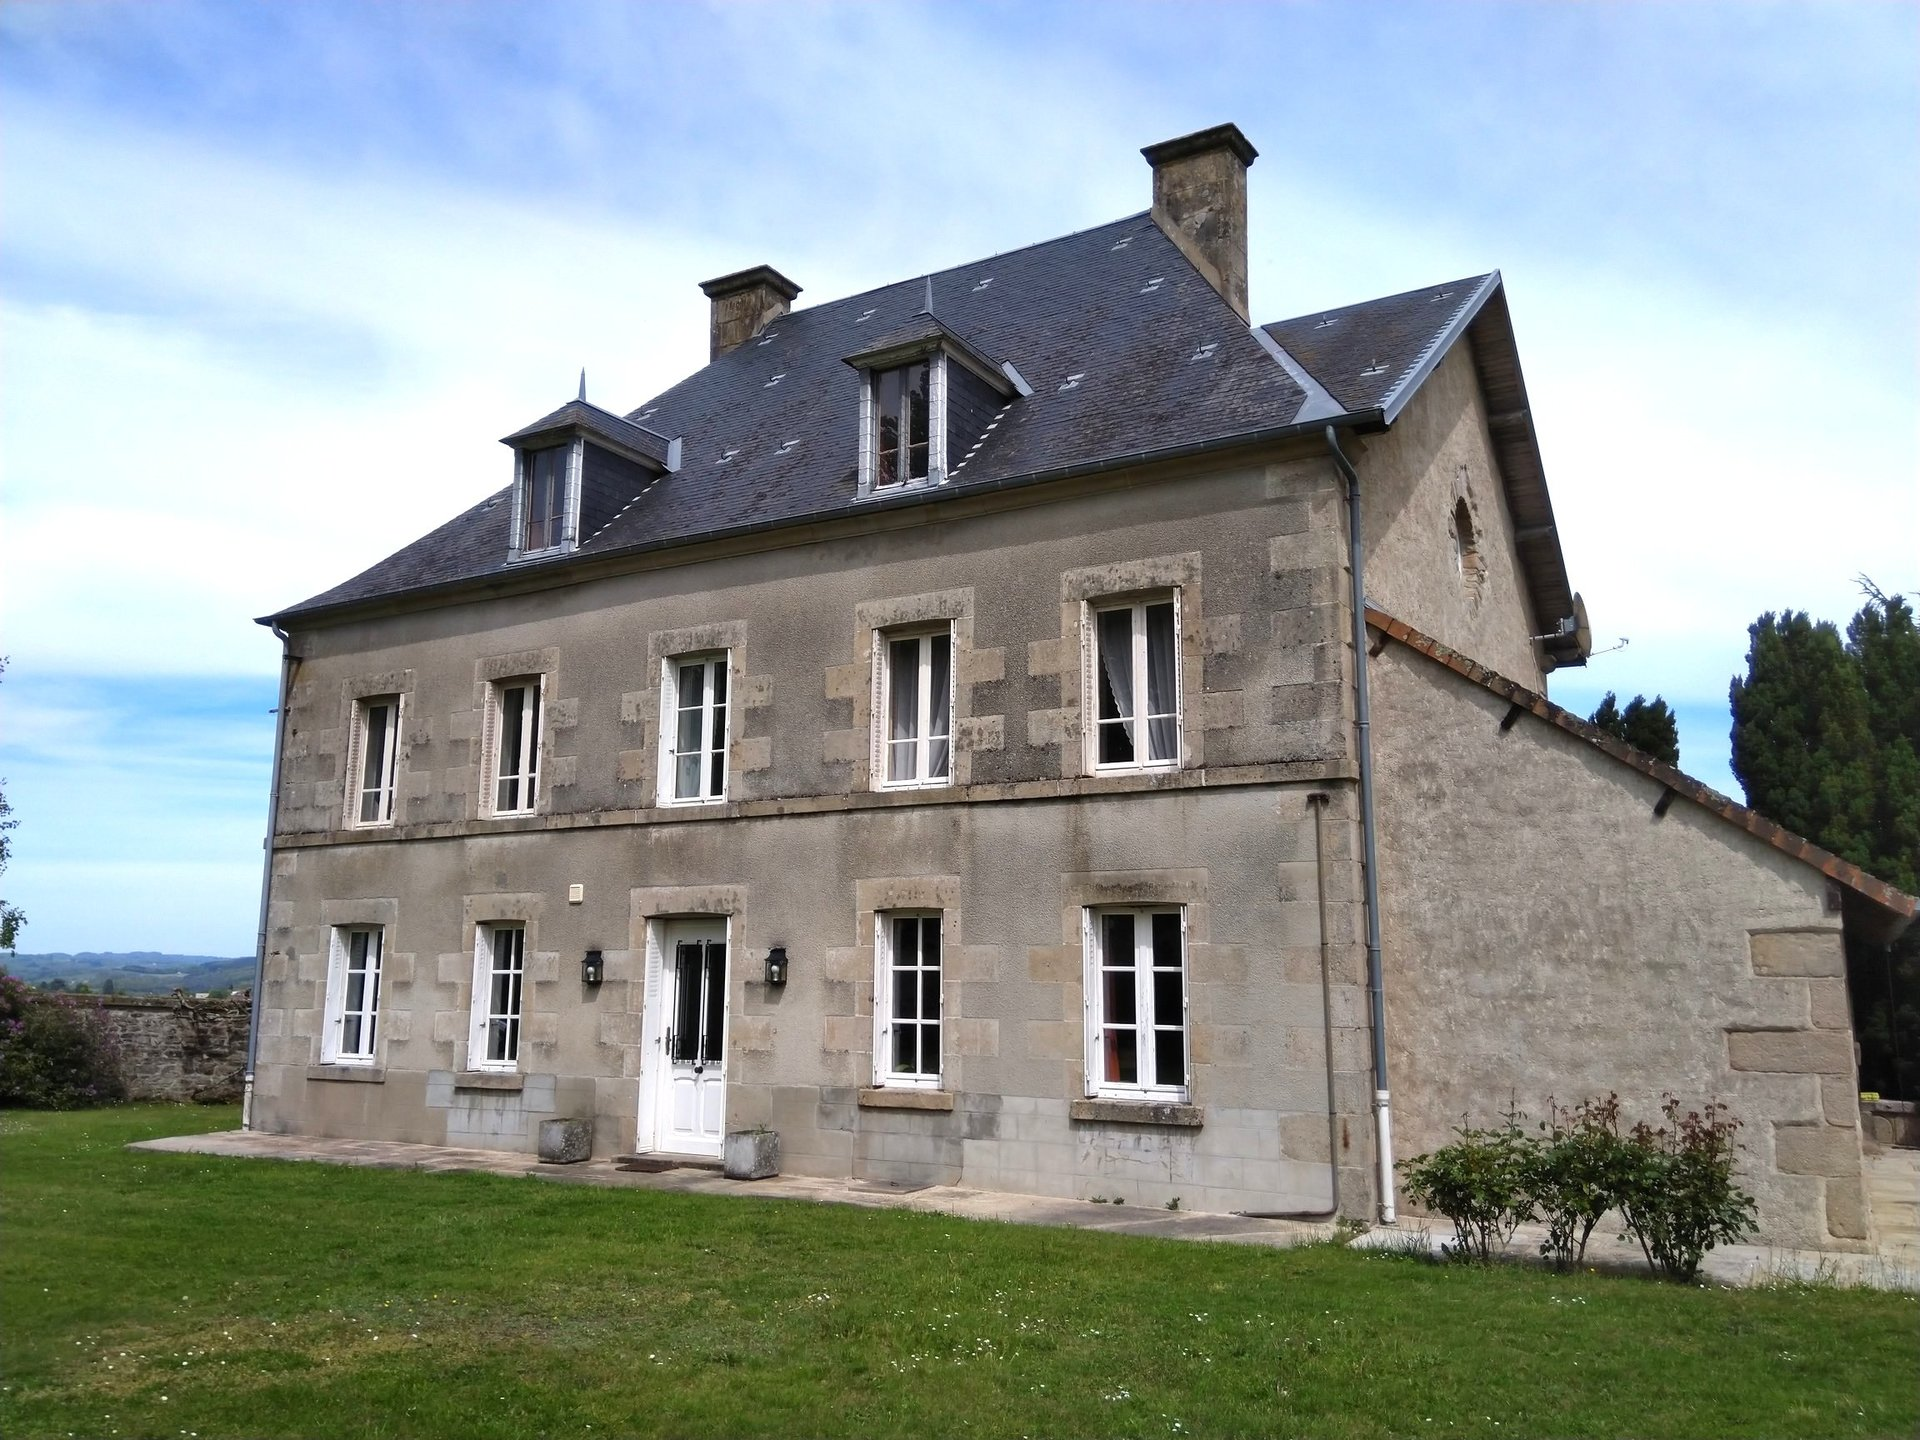 Magnificent 'Domaine' with a Maison de Maître and almost 9 acres